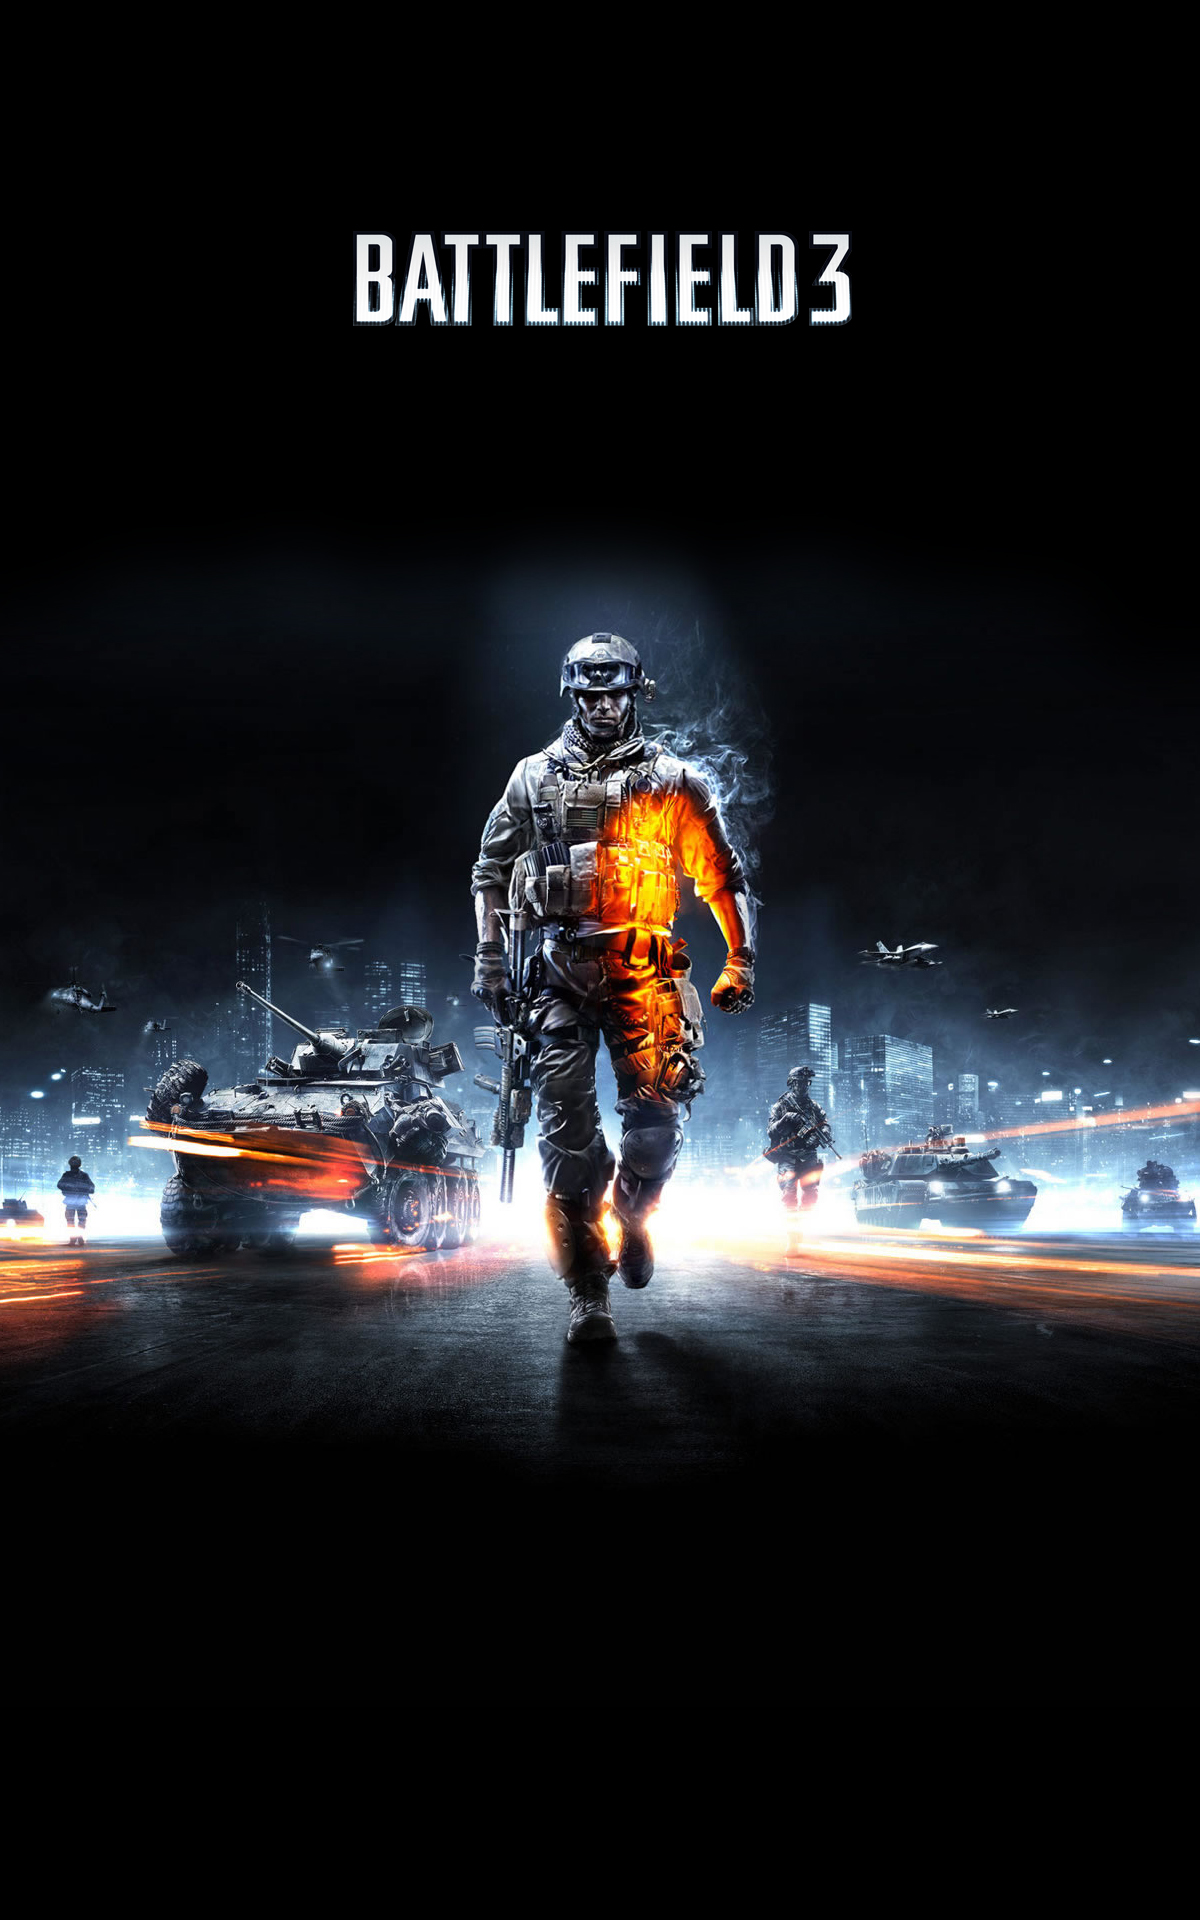 Battlefield 3 1200x1920 (with logo)